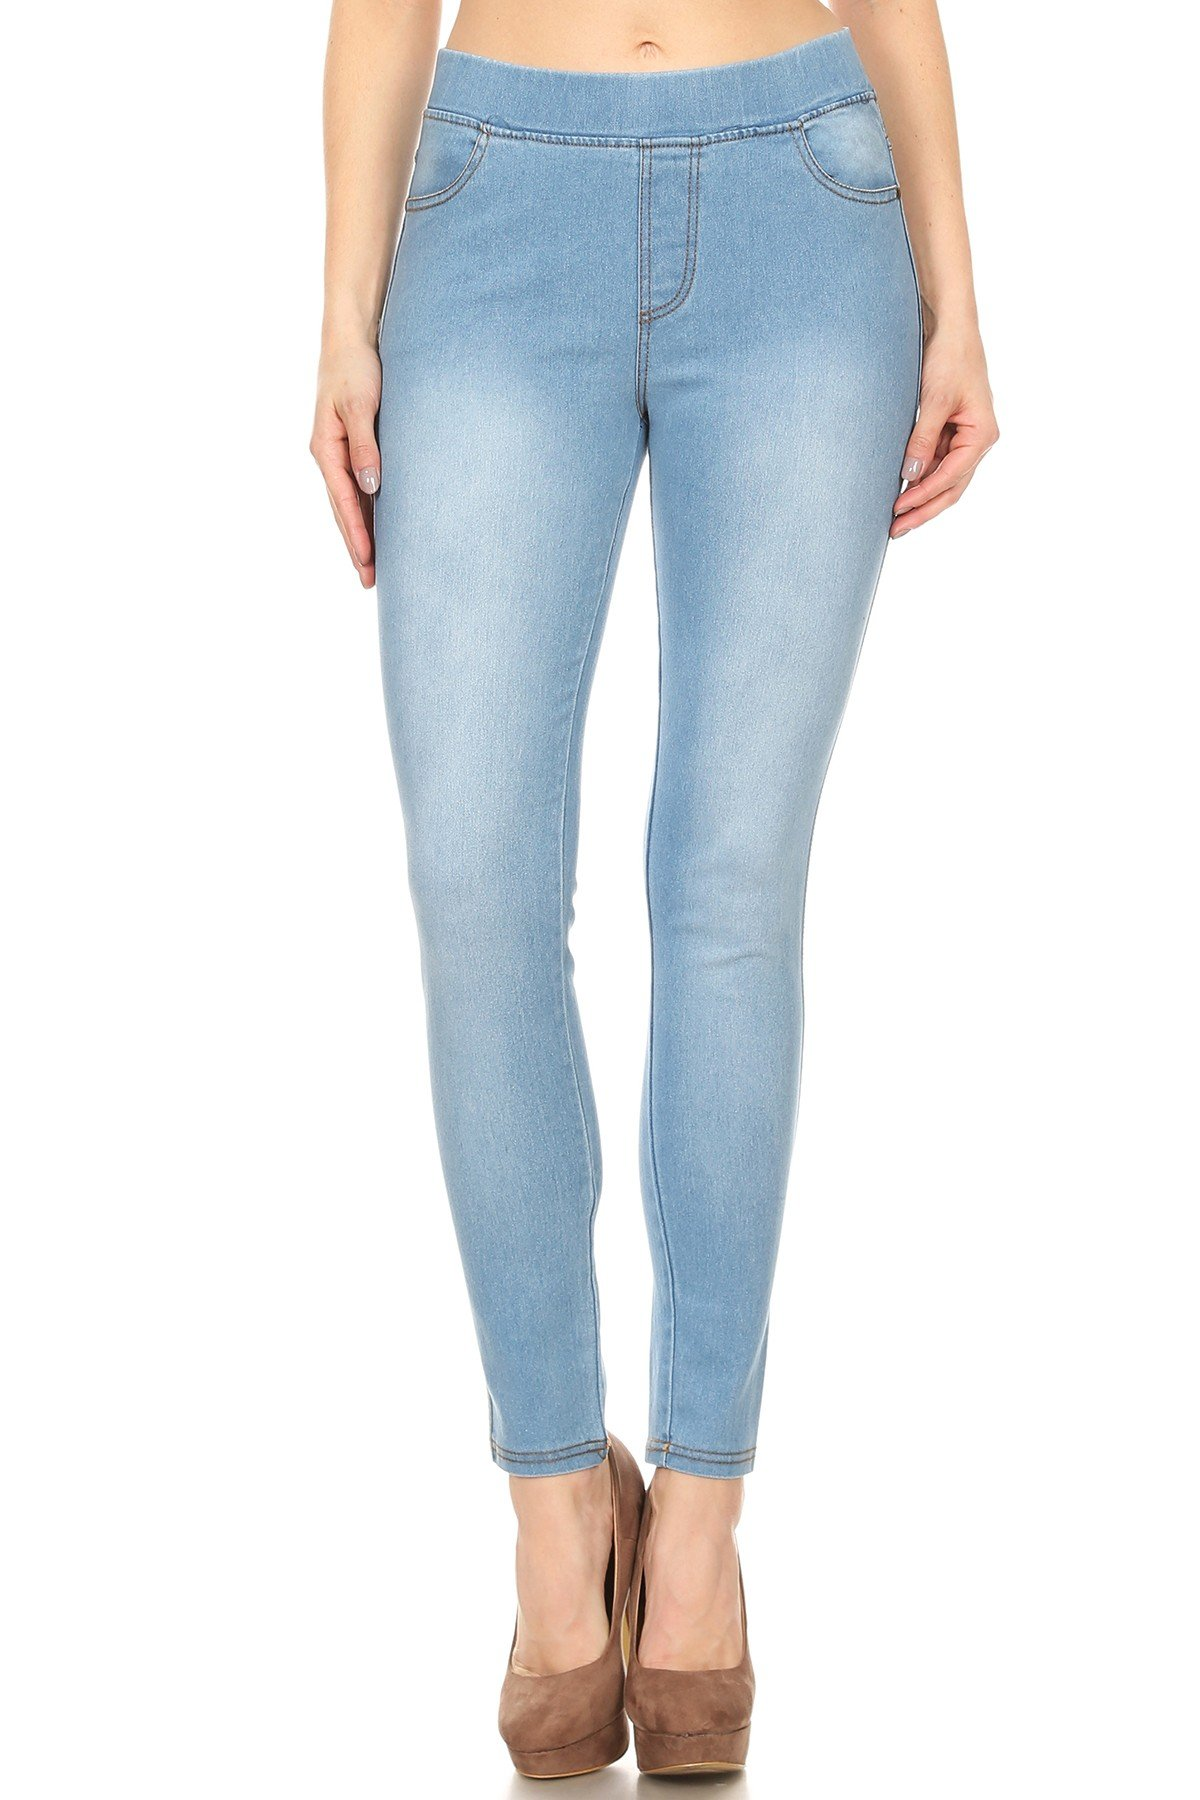 Women's Plus Size High Waist Stretchy Pull-On Skinny Denim Jeans (X-Large, Light Blue)